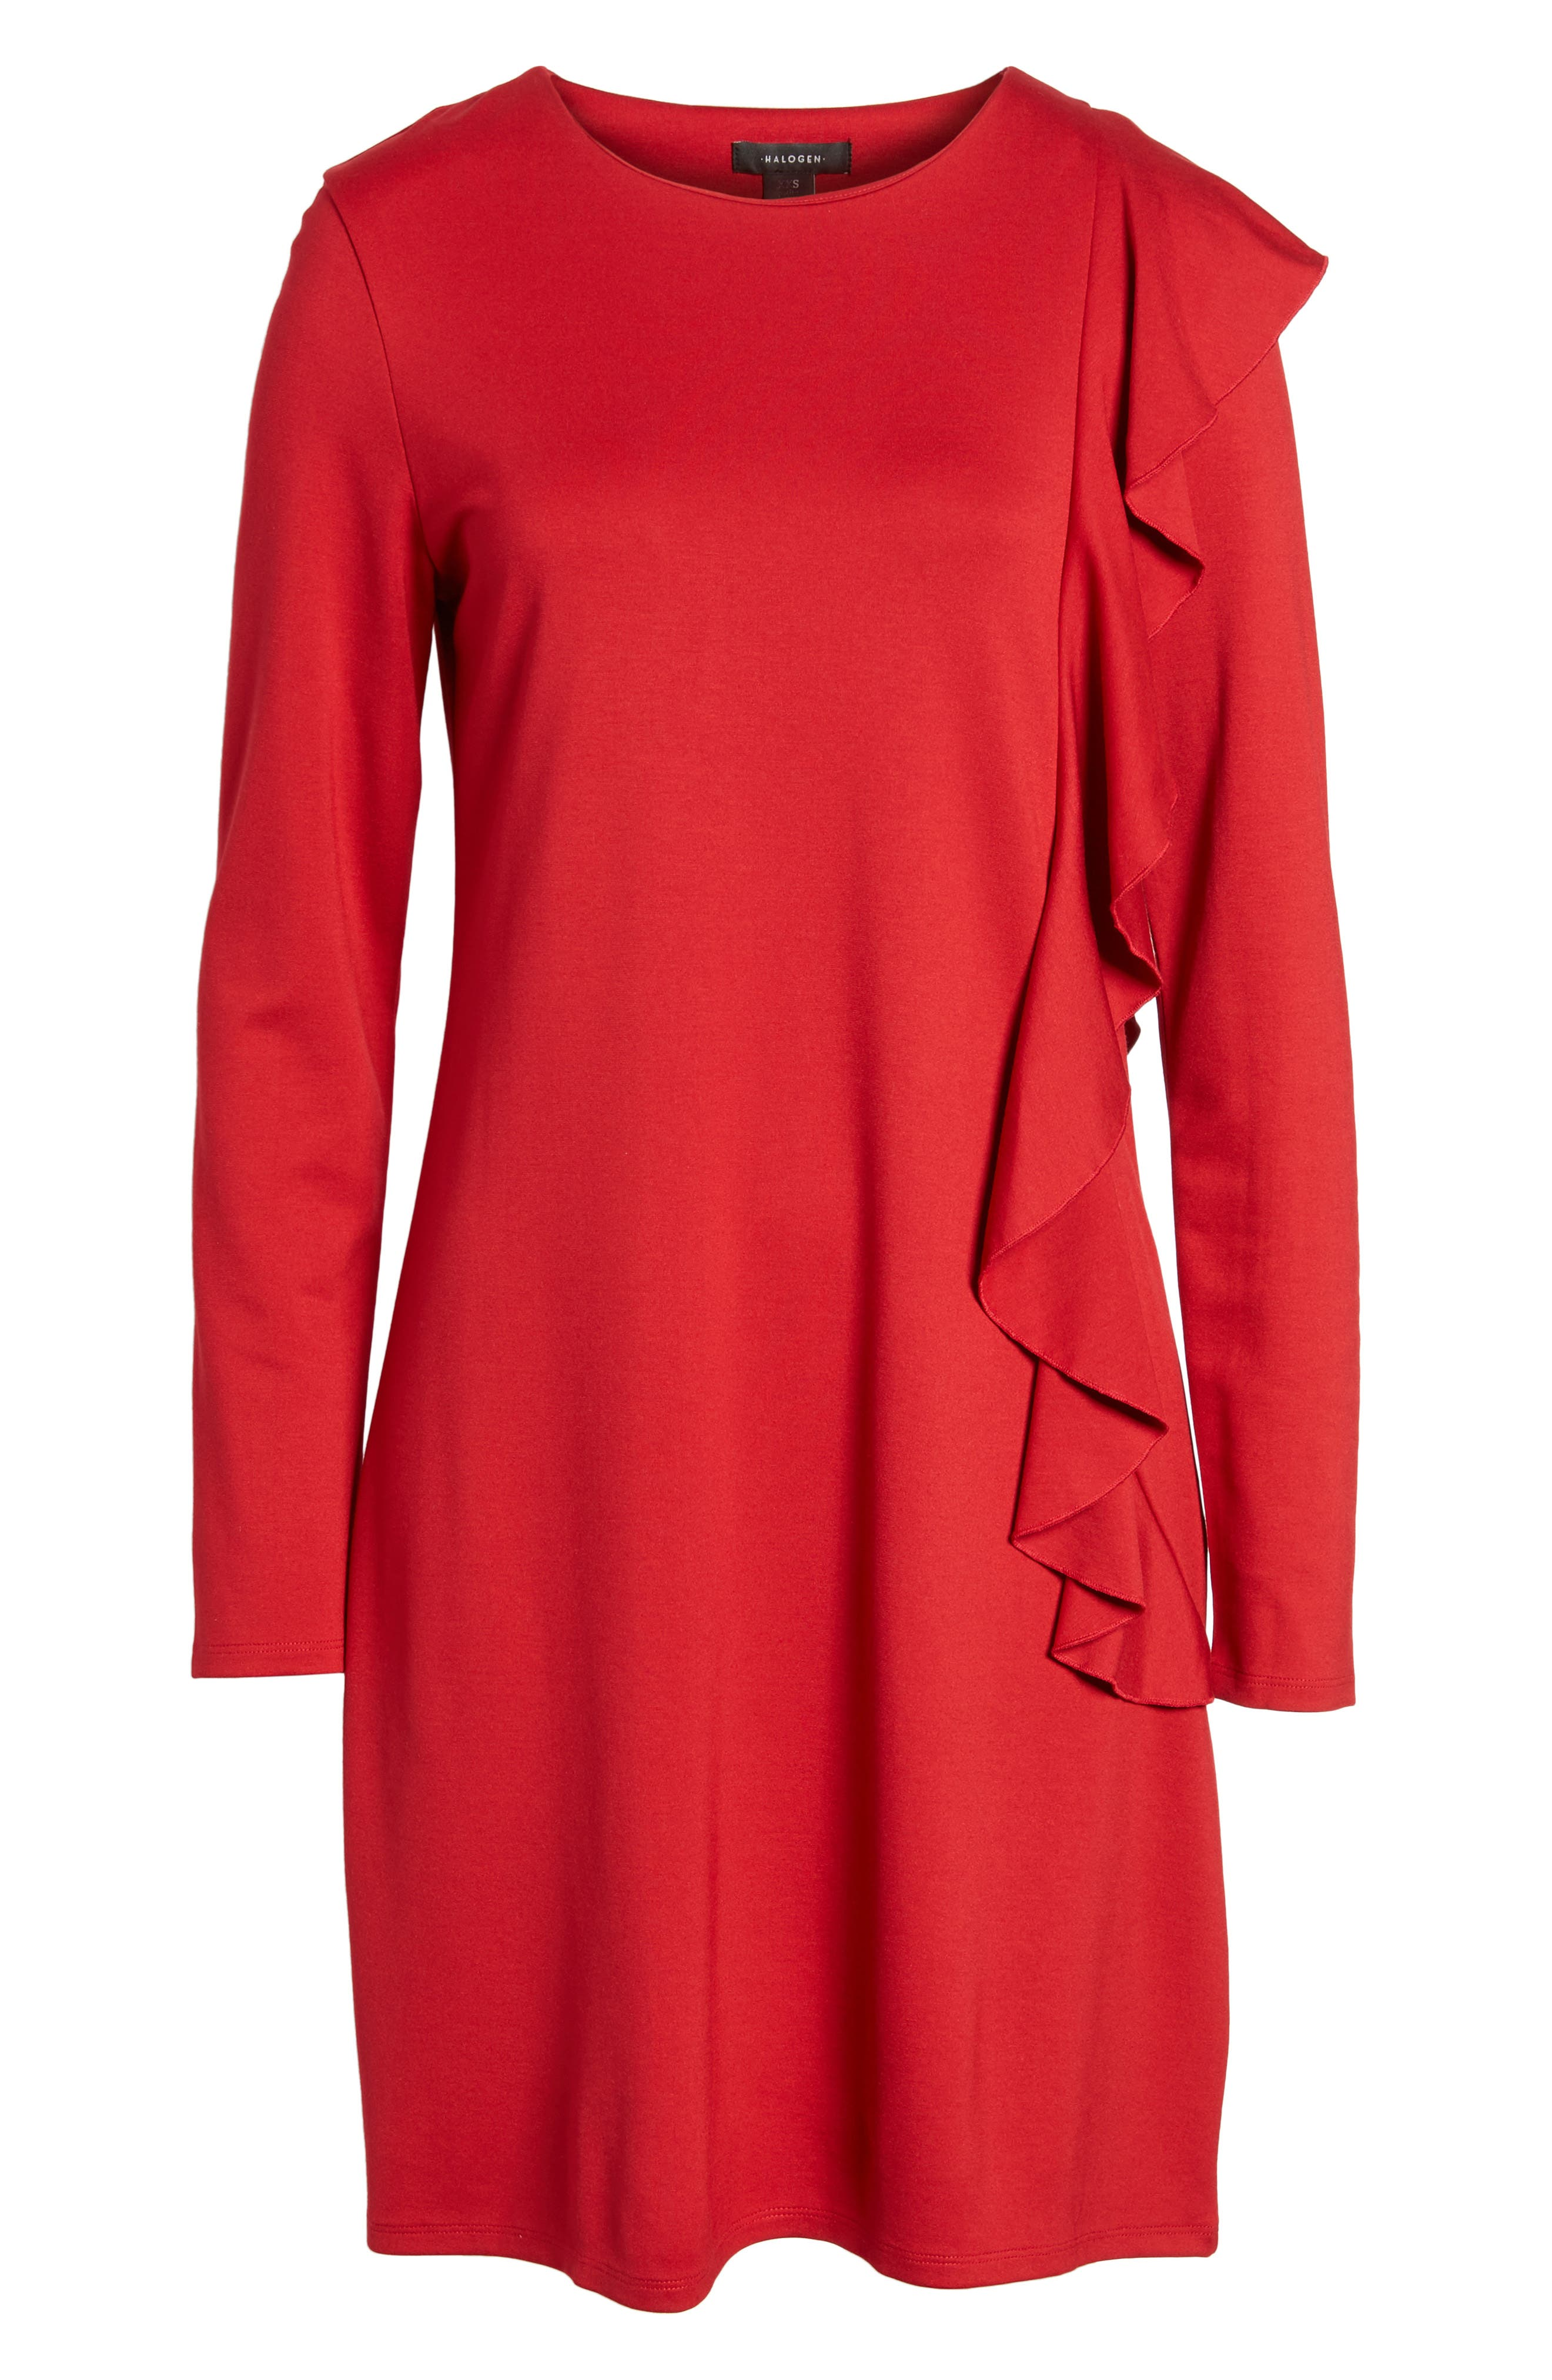 Halogen Ruffle Shift Dress,                             Alternate thumbnail 6, color,                             Red Chili